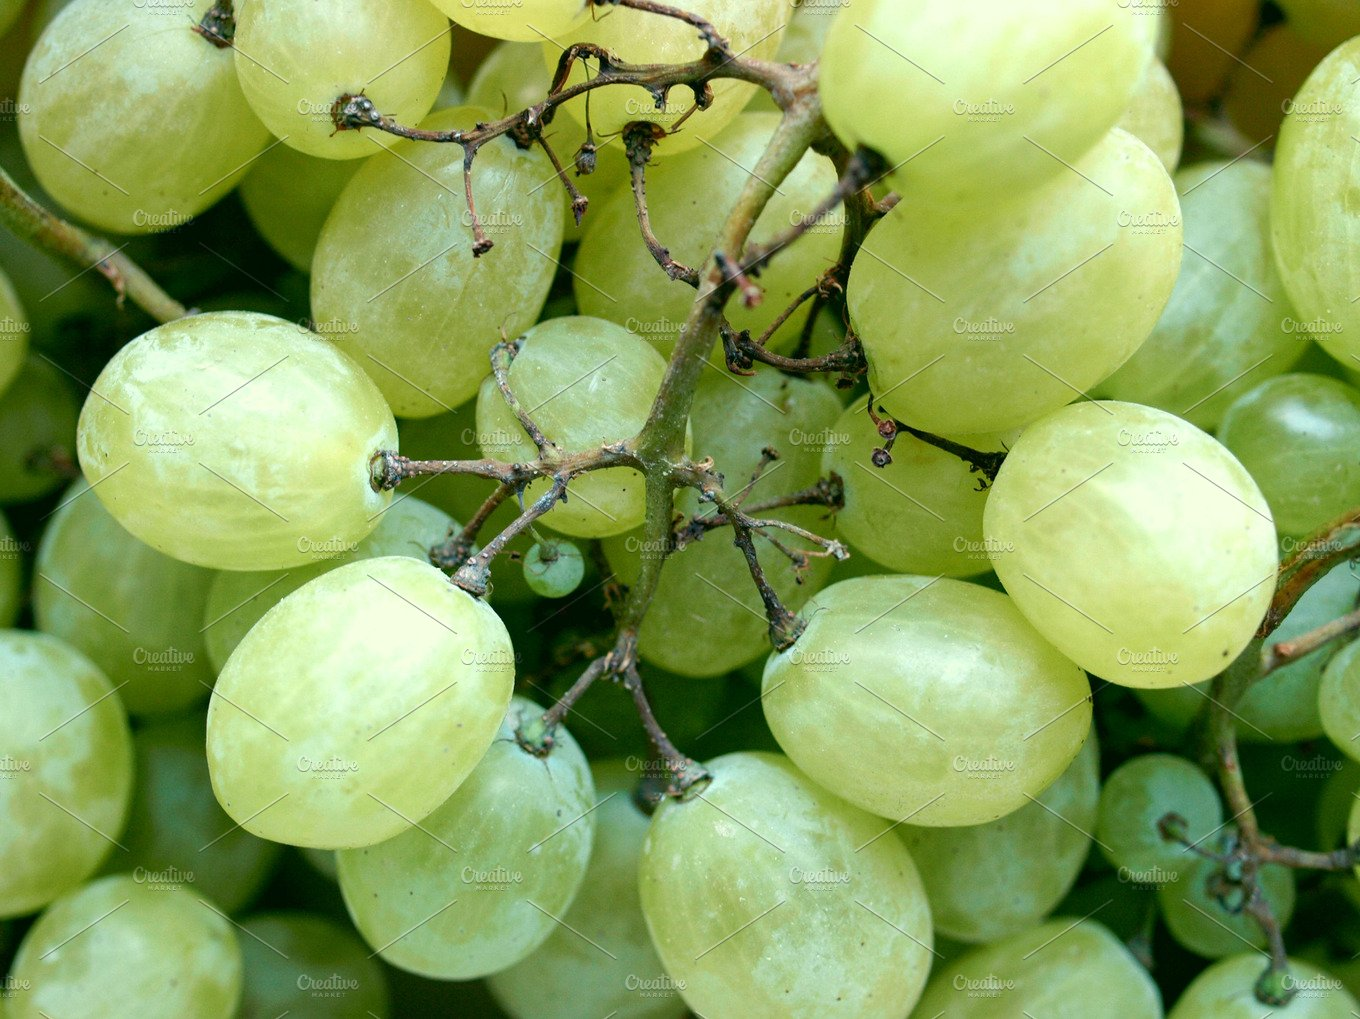 what to include in a cover letter grape food amp drink photos creative market 25587 | izsatjrr0ysup2vztsvb0qsmhbhlqdj1mqxclbdiaqilb9rnyq9h3wzgvcq4n9p6